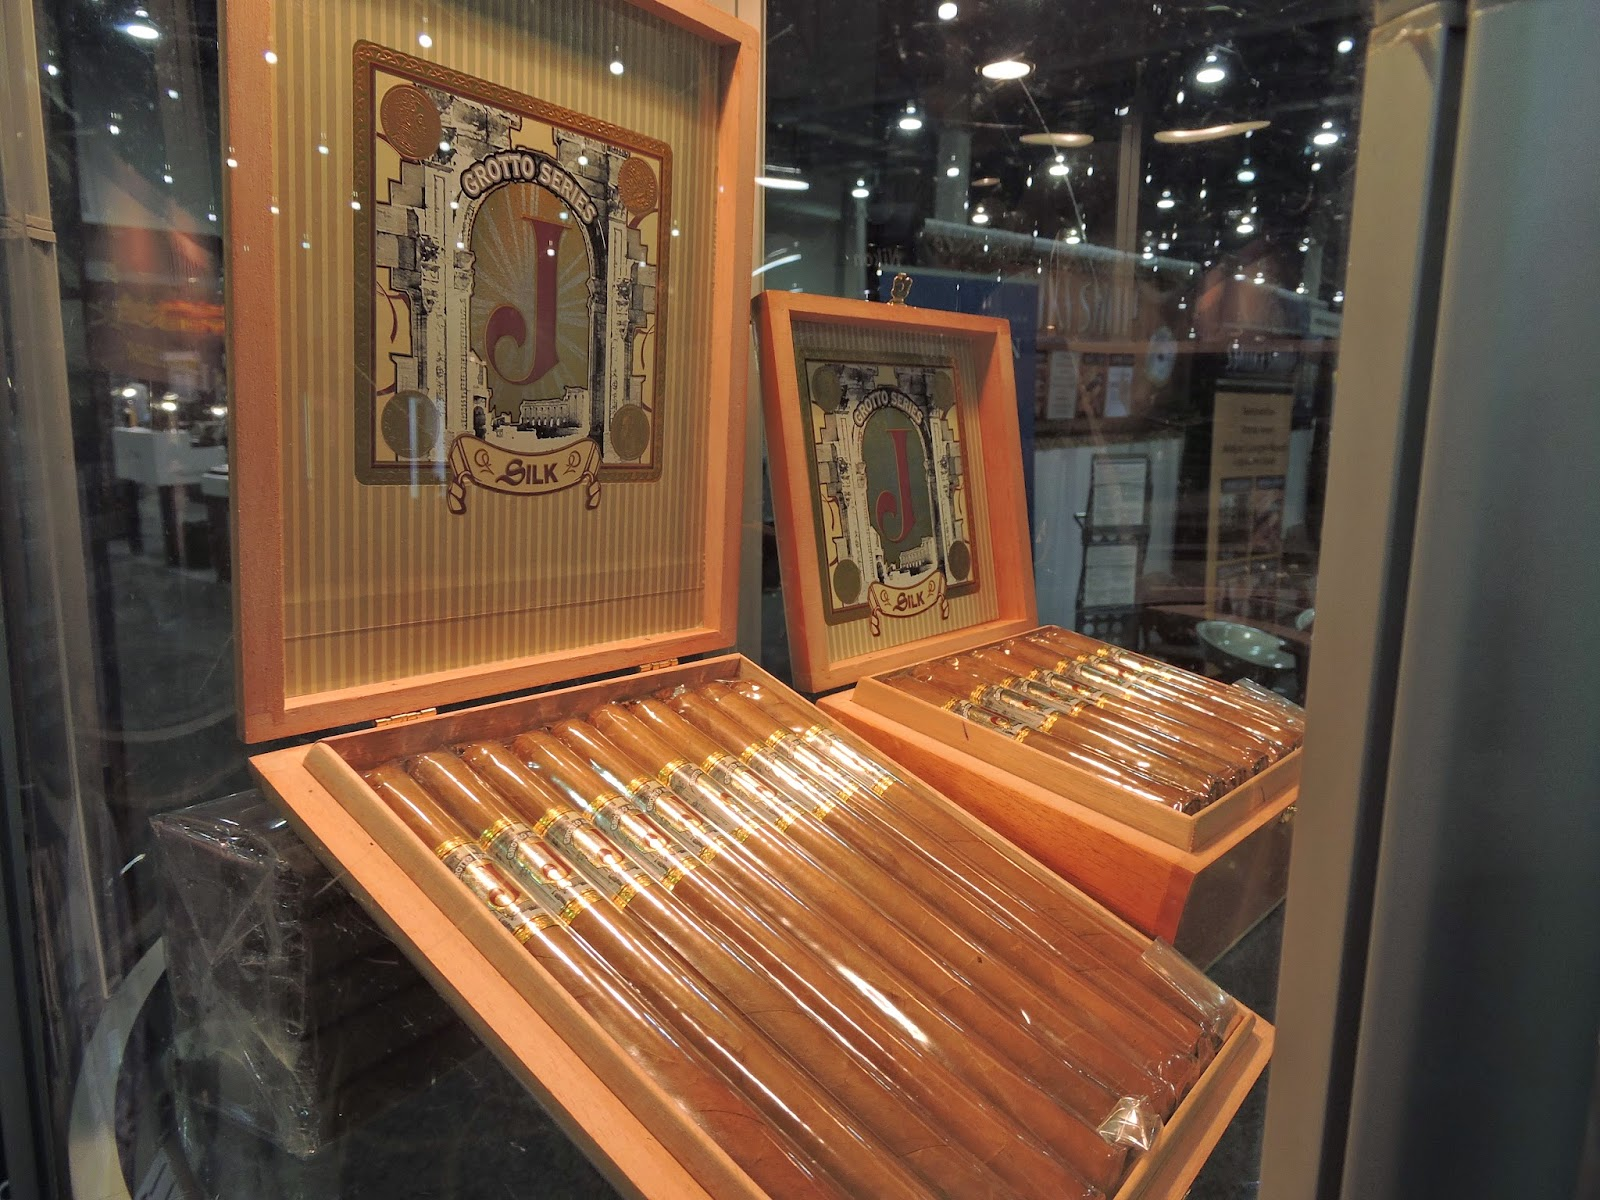 Cigar News: J. Grotto Silk Lancero Launched at 2014 IPCPR Trade Show (Cigar Preview)